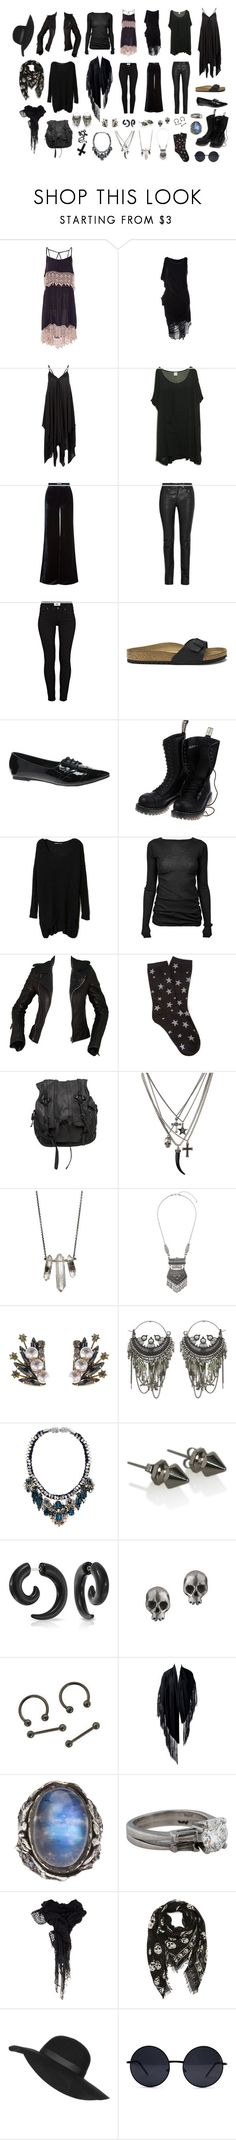 """""""capsule wardrobe one"""" by beehivebespoke ❤ liked on Polyvore featuring Religion Clothing, Emilio Pucci, Helmut Lang, Paige Denim, Birkenstock, ASOS, Vegetarian Shoes, Rick Owens, Balenciaga and Forever 21"""